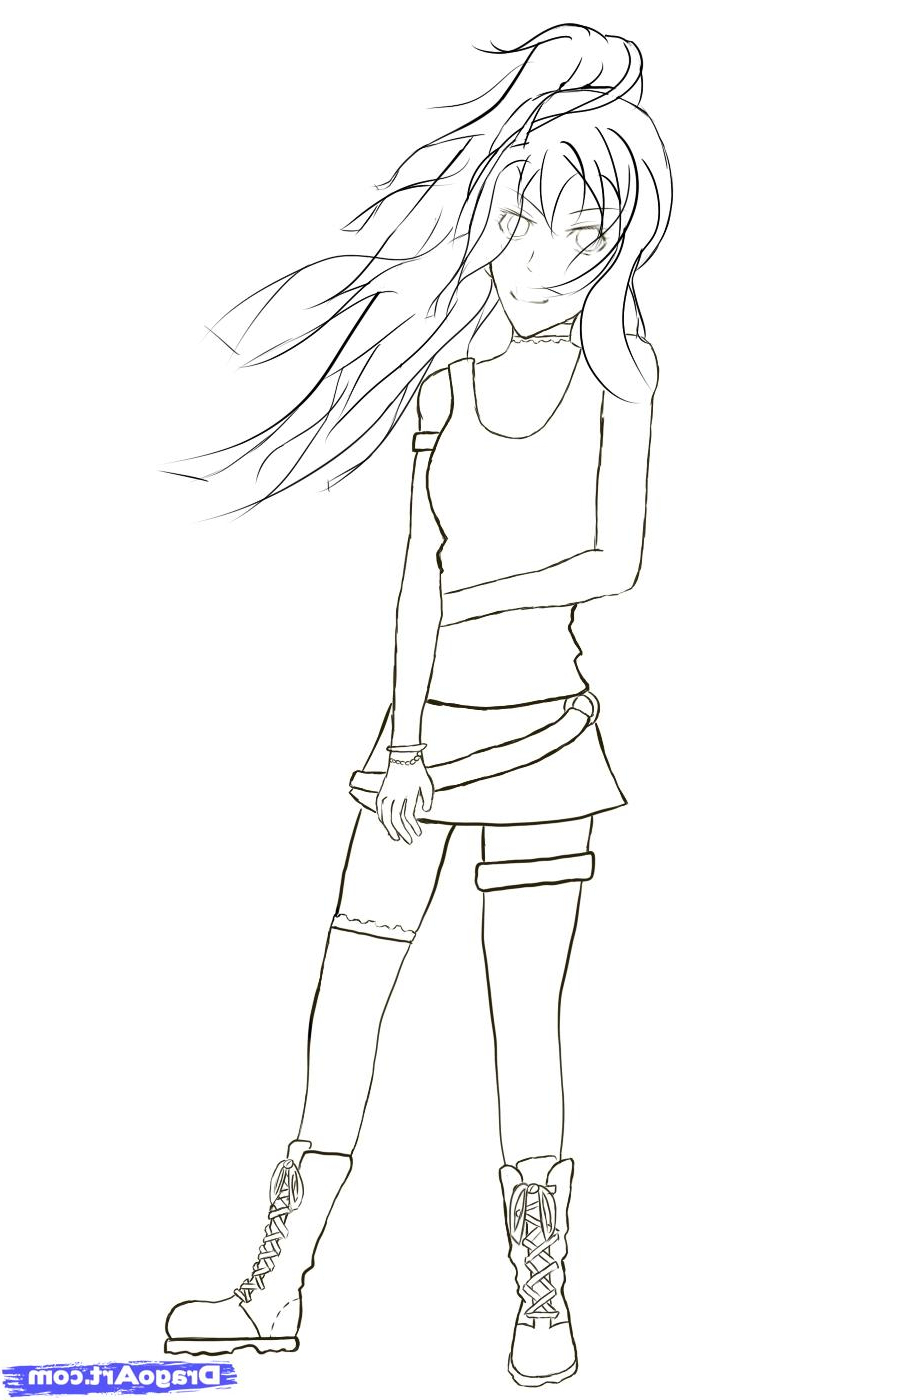 900x1400 Easy Anime Simple Girl Whole Body Drawing Easy Anime Pencil